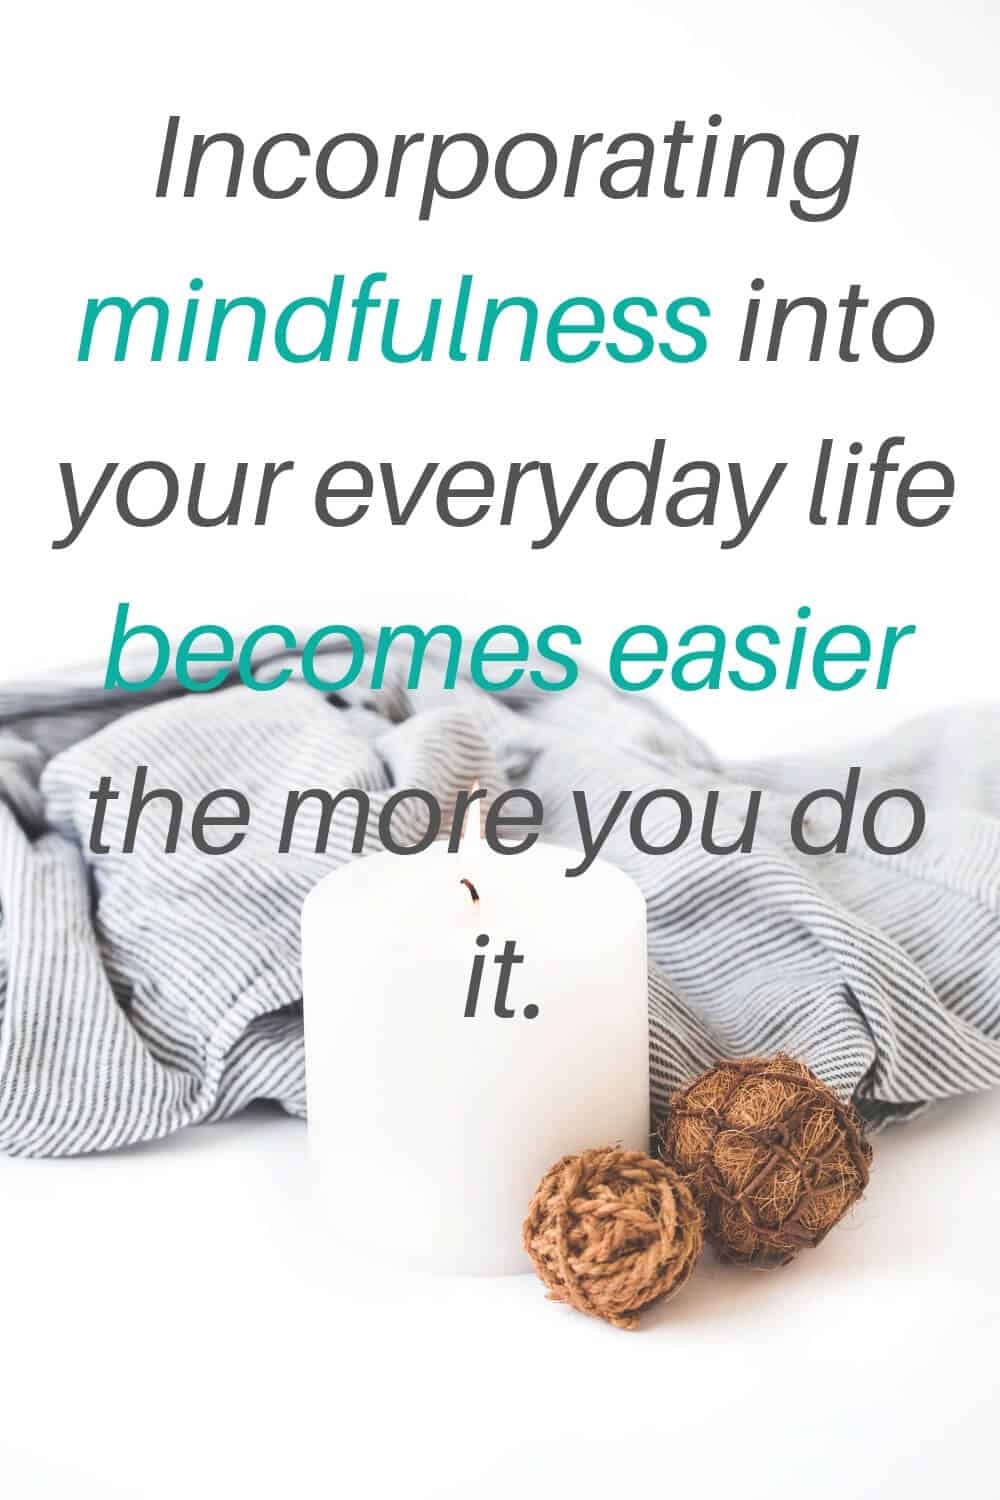 mindfulness a part of your day - 4